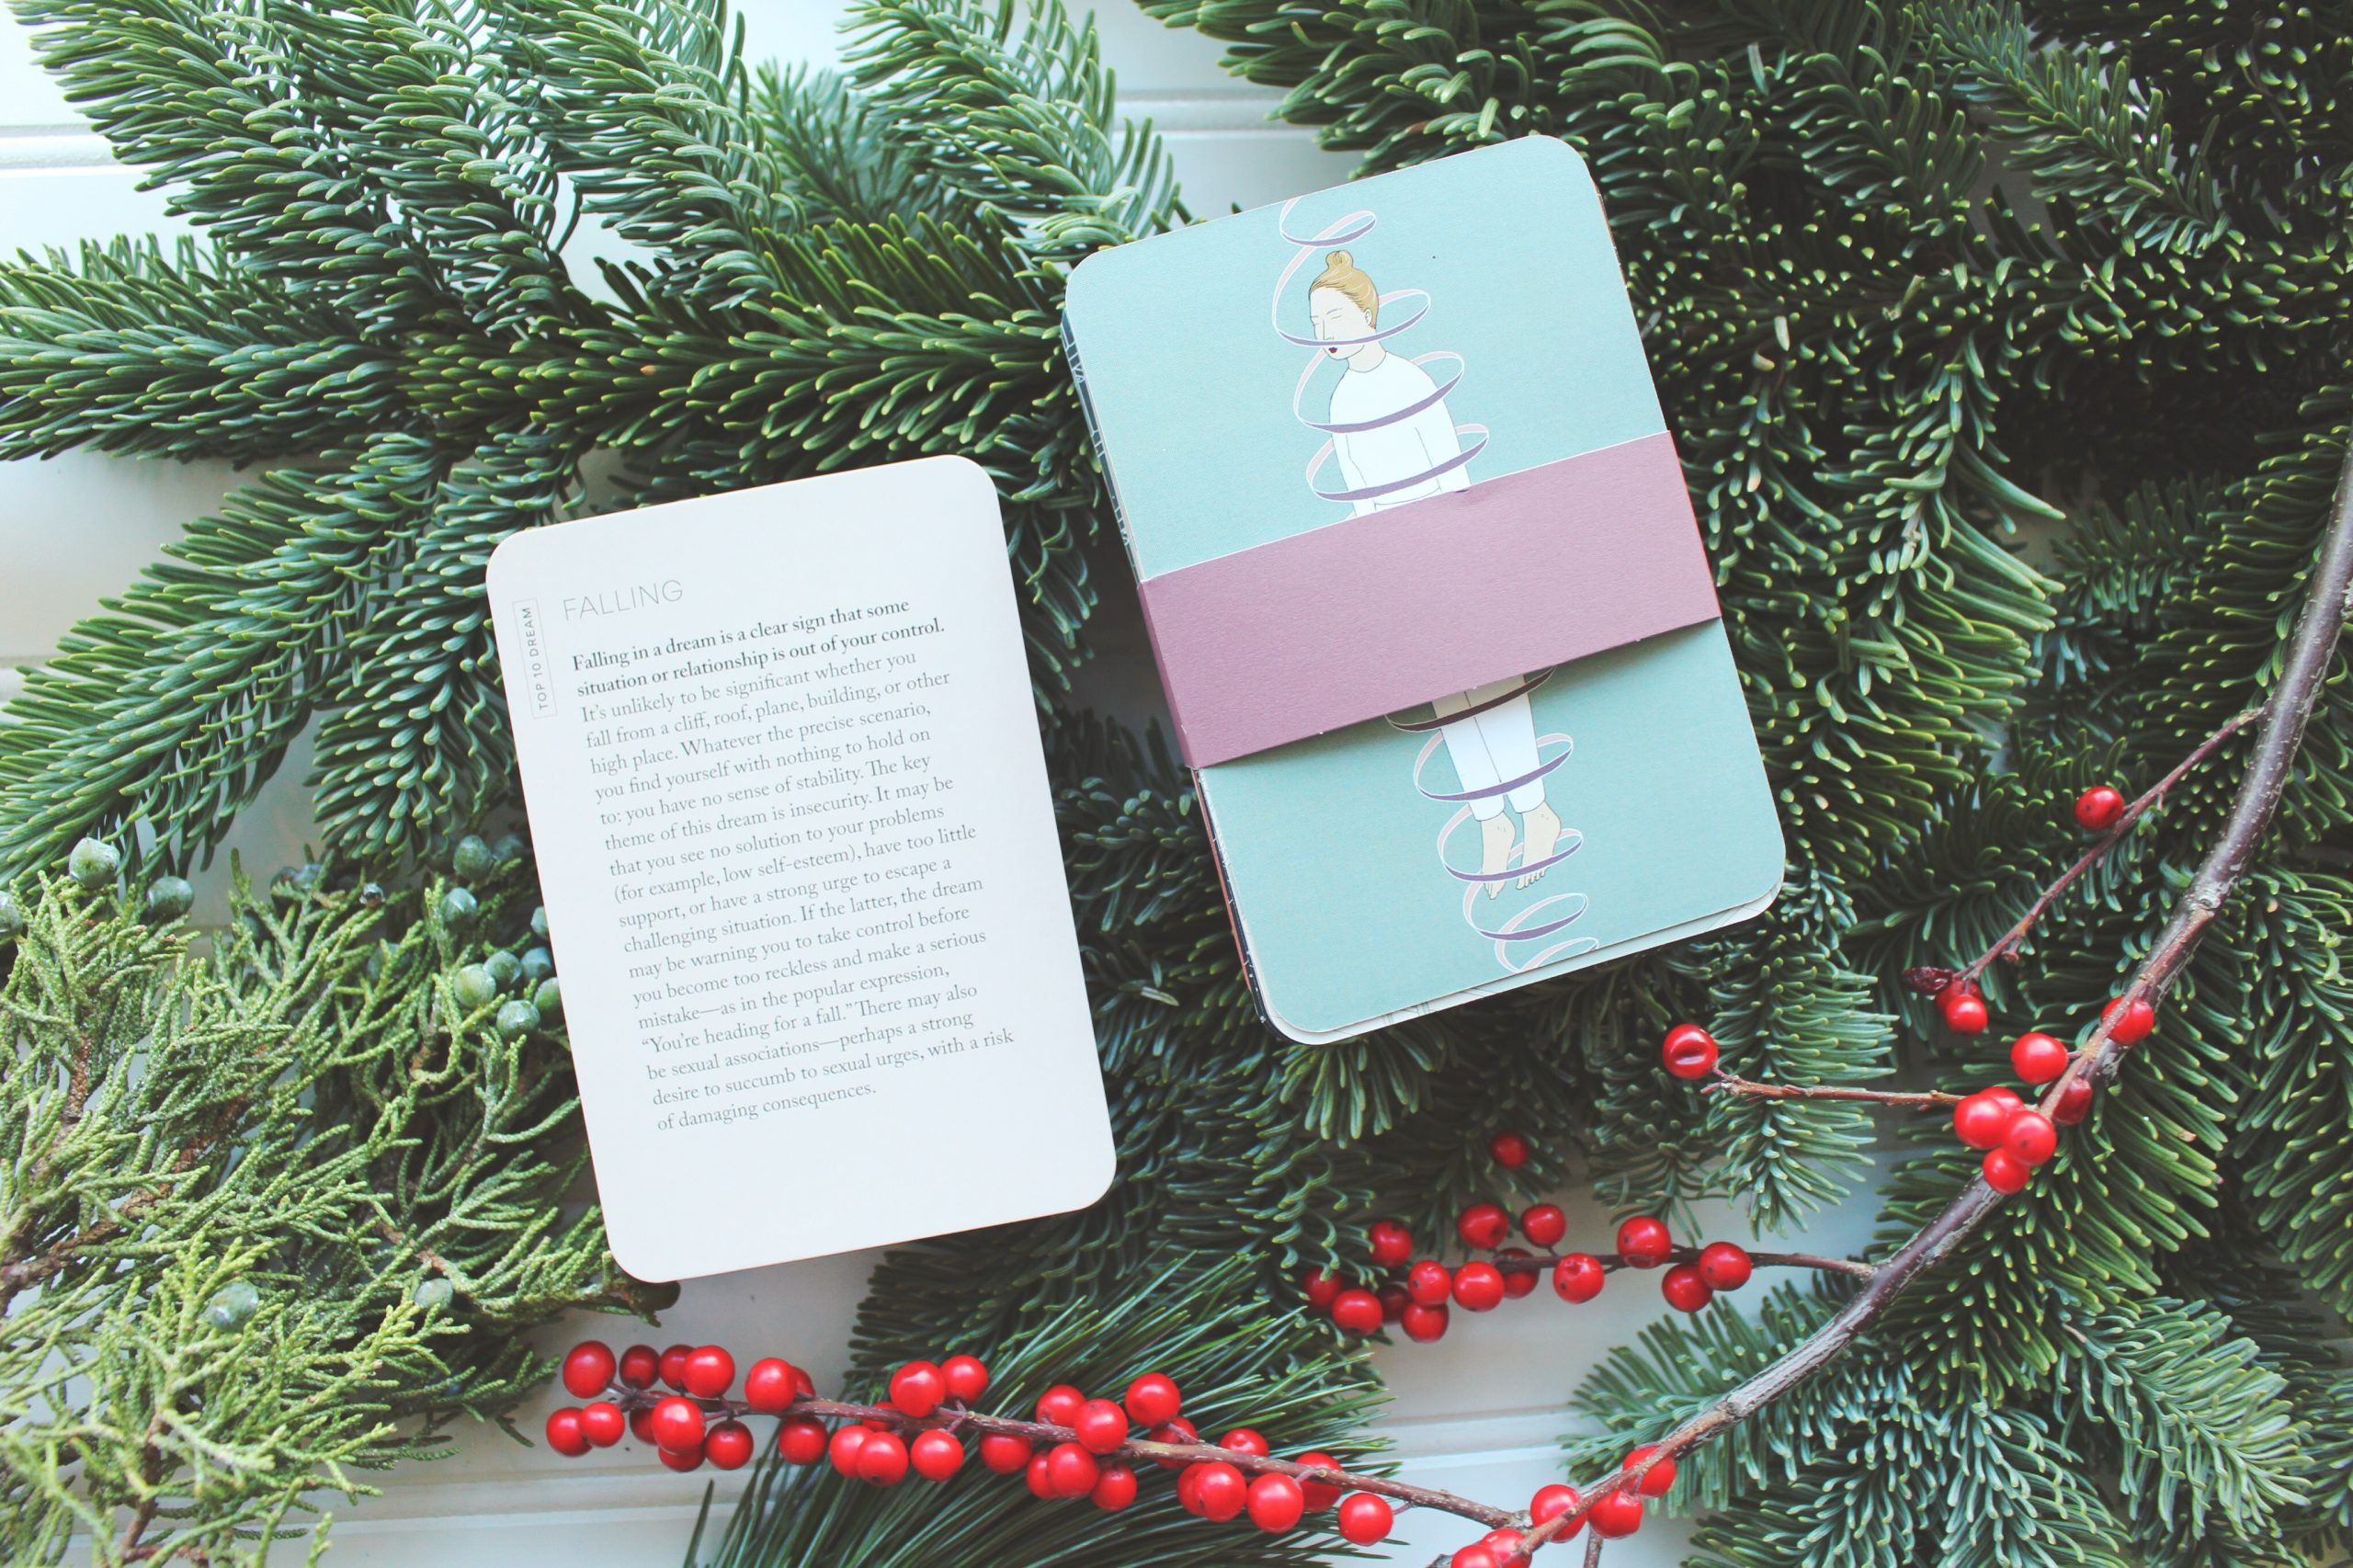 Why You Should Have Emergency Christmas Gifts On Hand